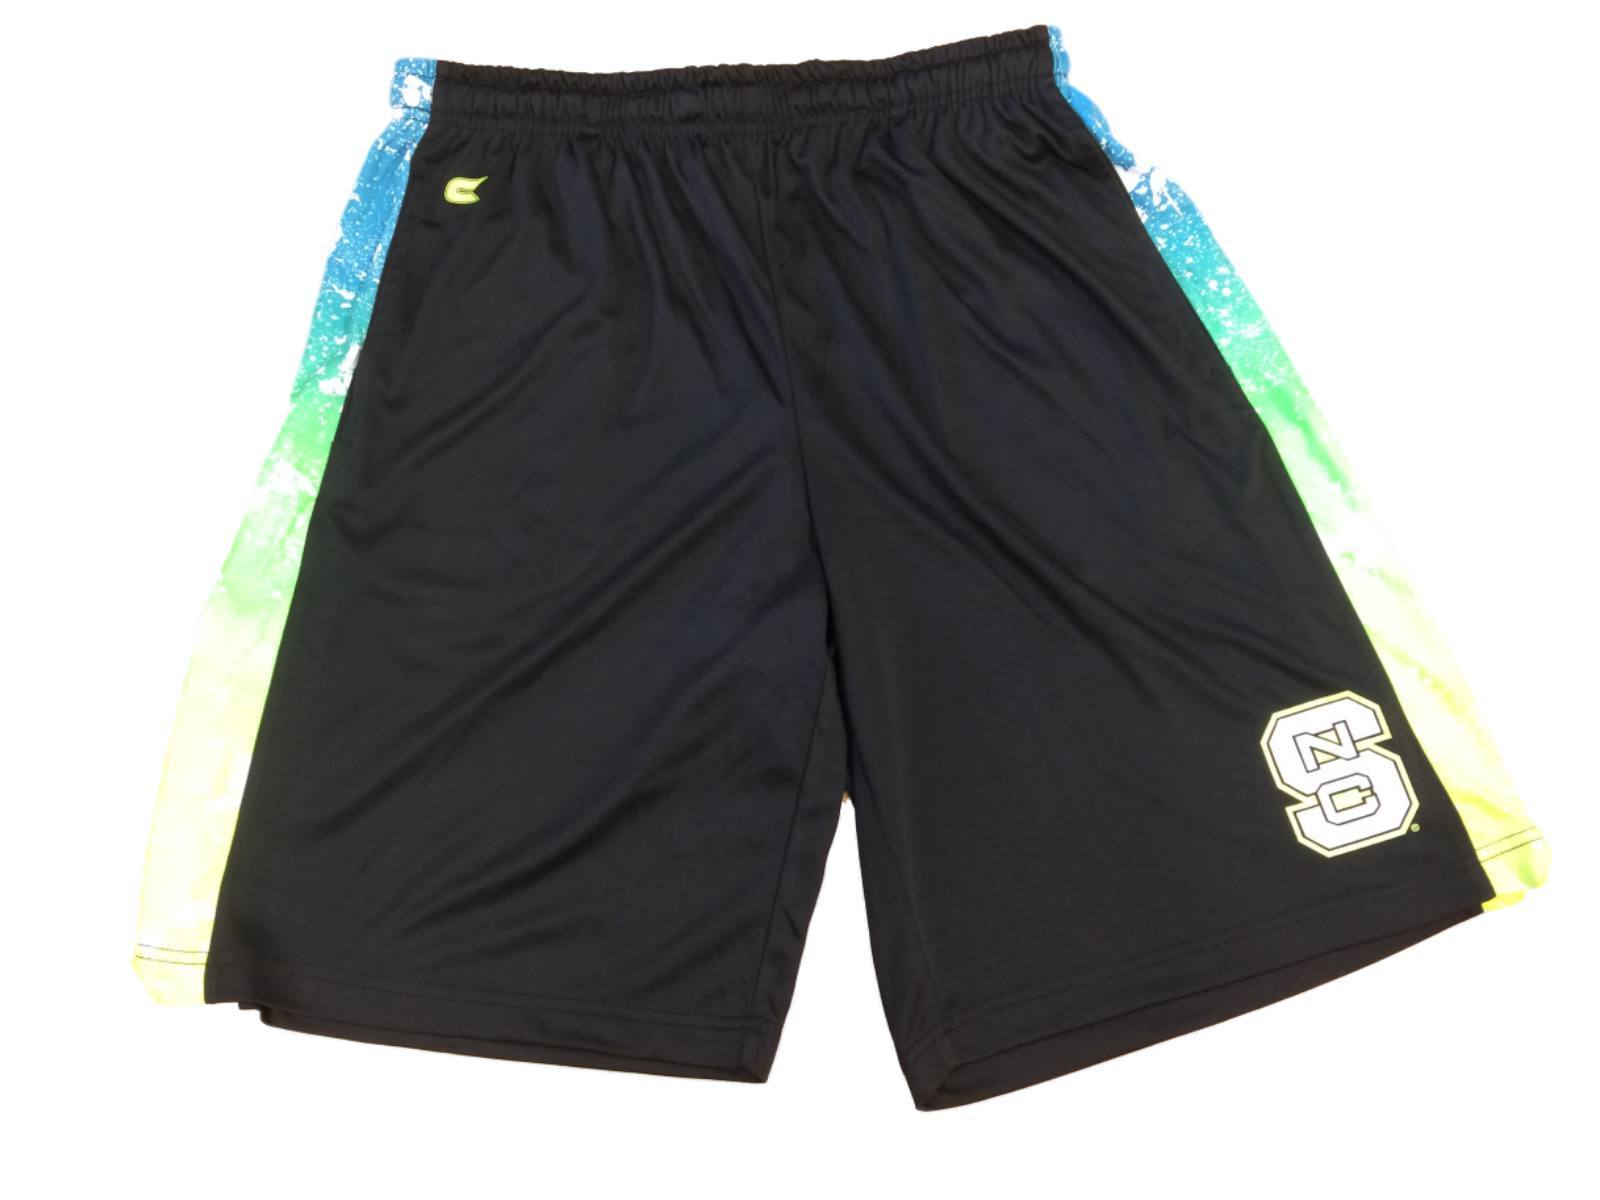 Nc State Colosseum Black With Neon Drawstring Athletic Shorts With Pockets (l)